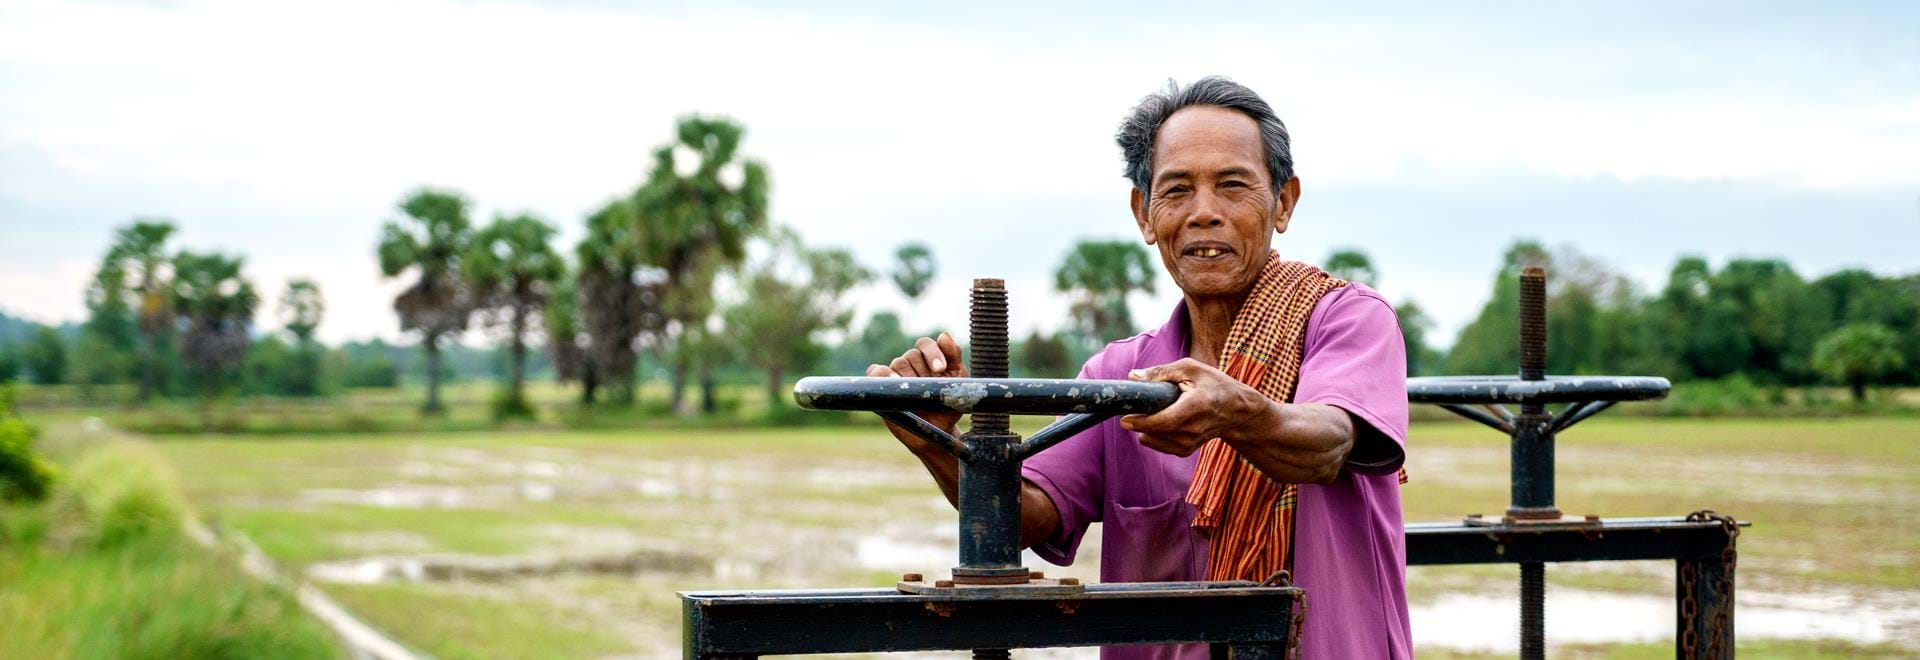 Cambodian man using water pump in field